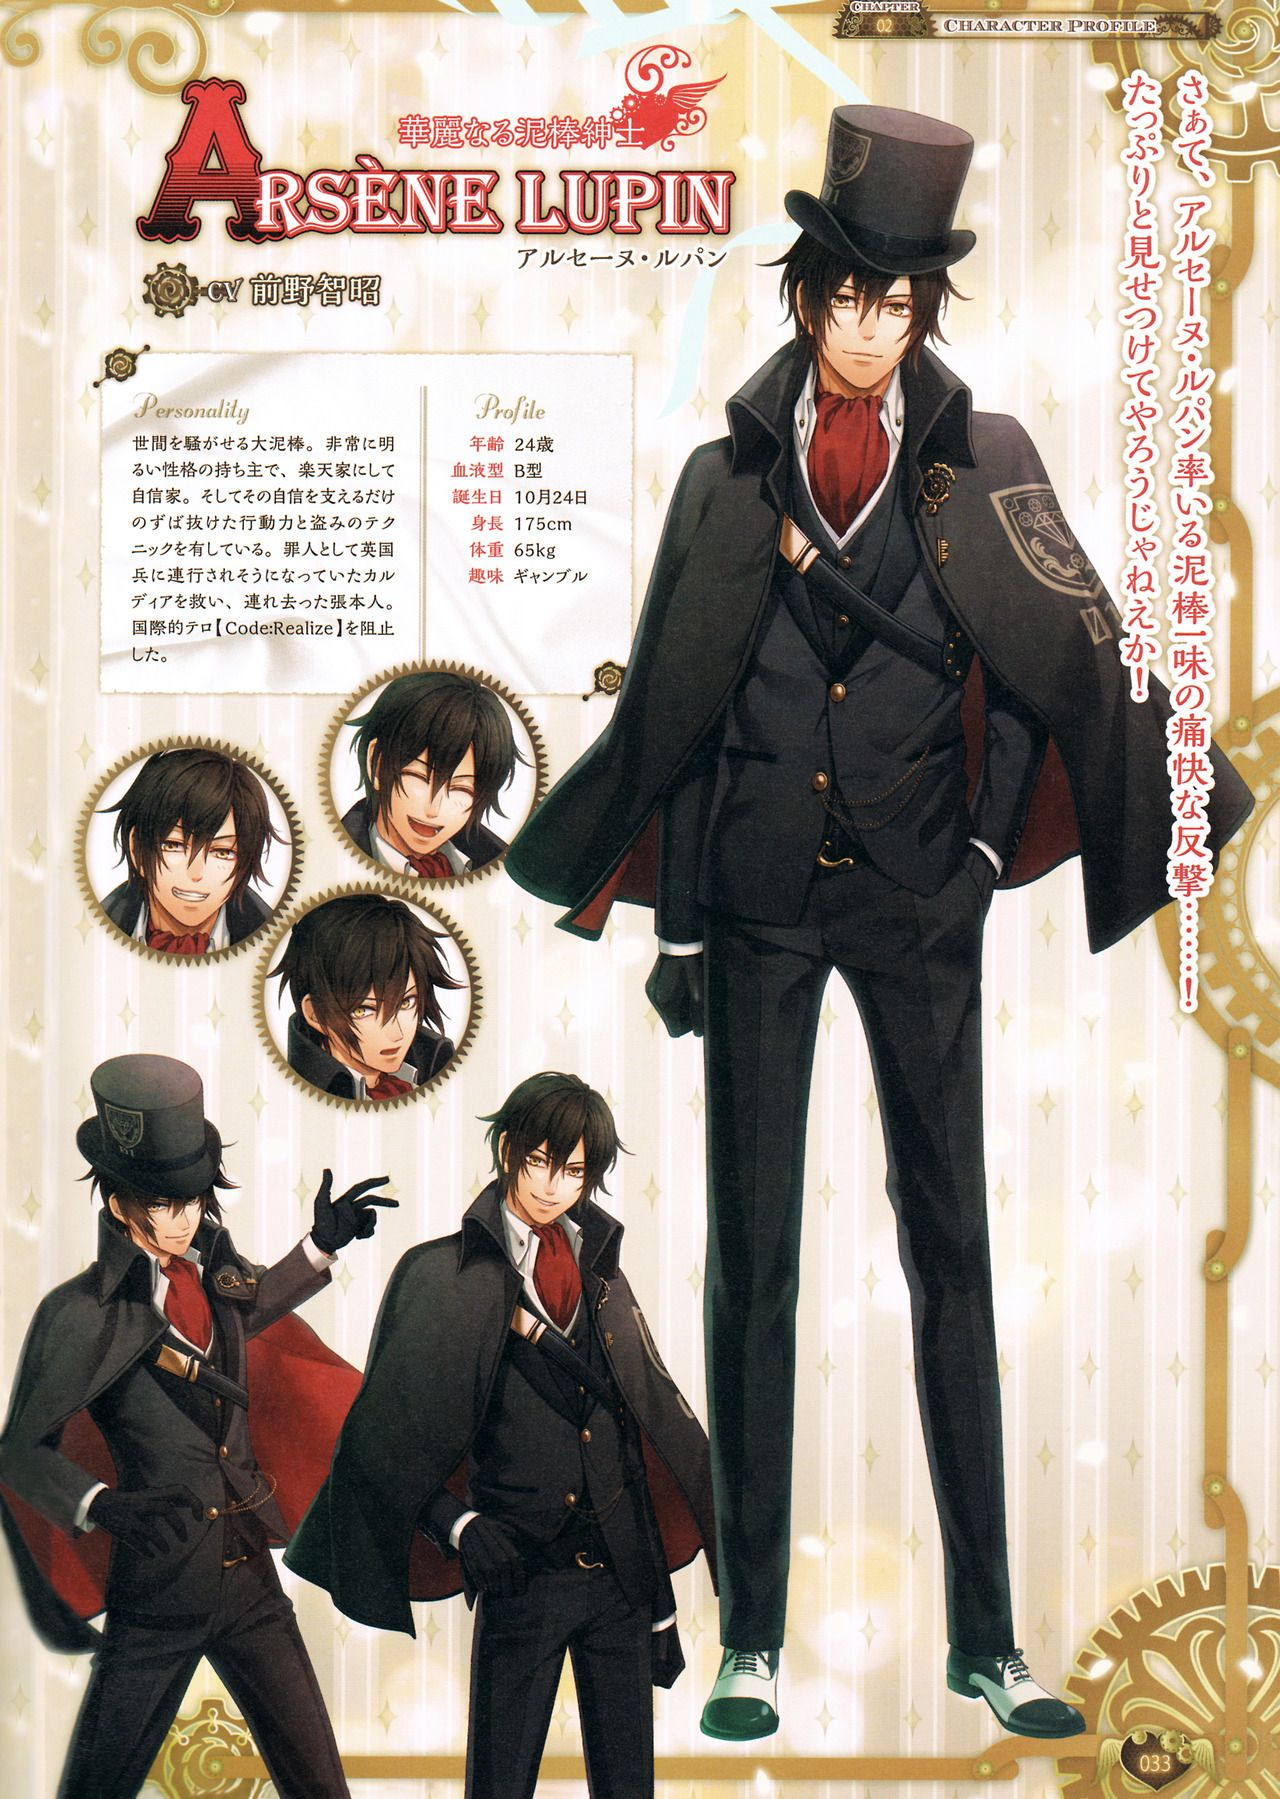 a review of the original lupin story arsene lupin gentleman thief Review this title 5 reviews hide  detailed in leblanc's first book 'arsene lupin, gentleman thief'  this is an original screenplay,borrowing some elements from.